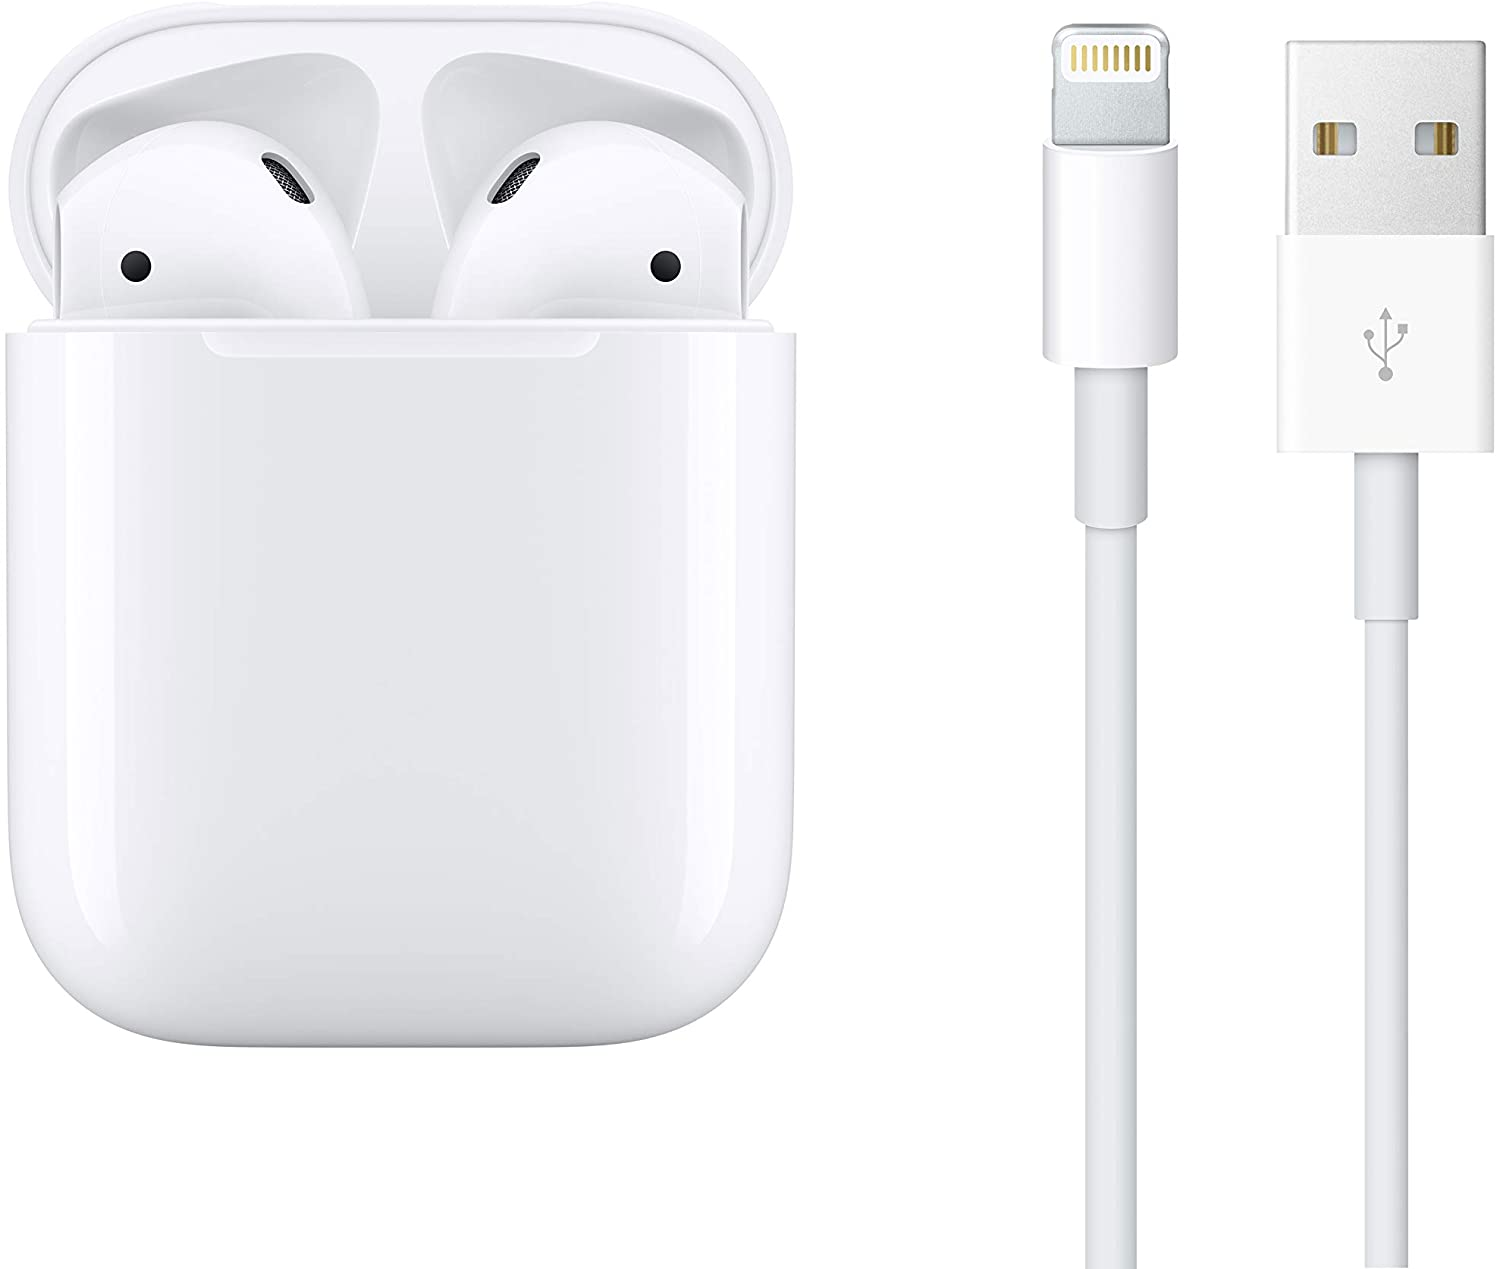 28% off Apple AirPods with Charging Case (Wired)